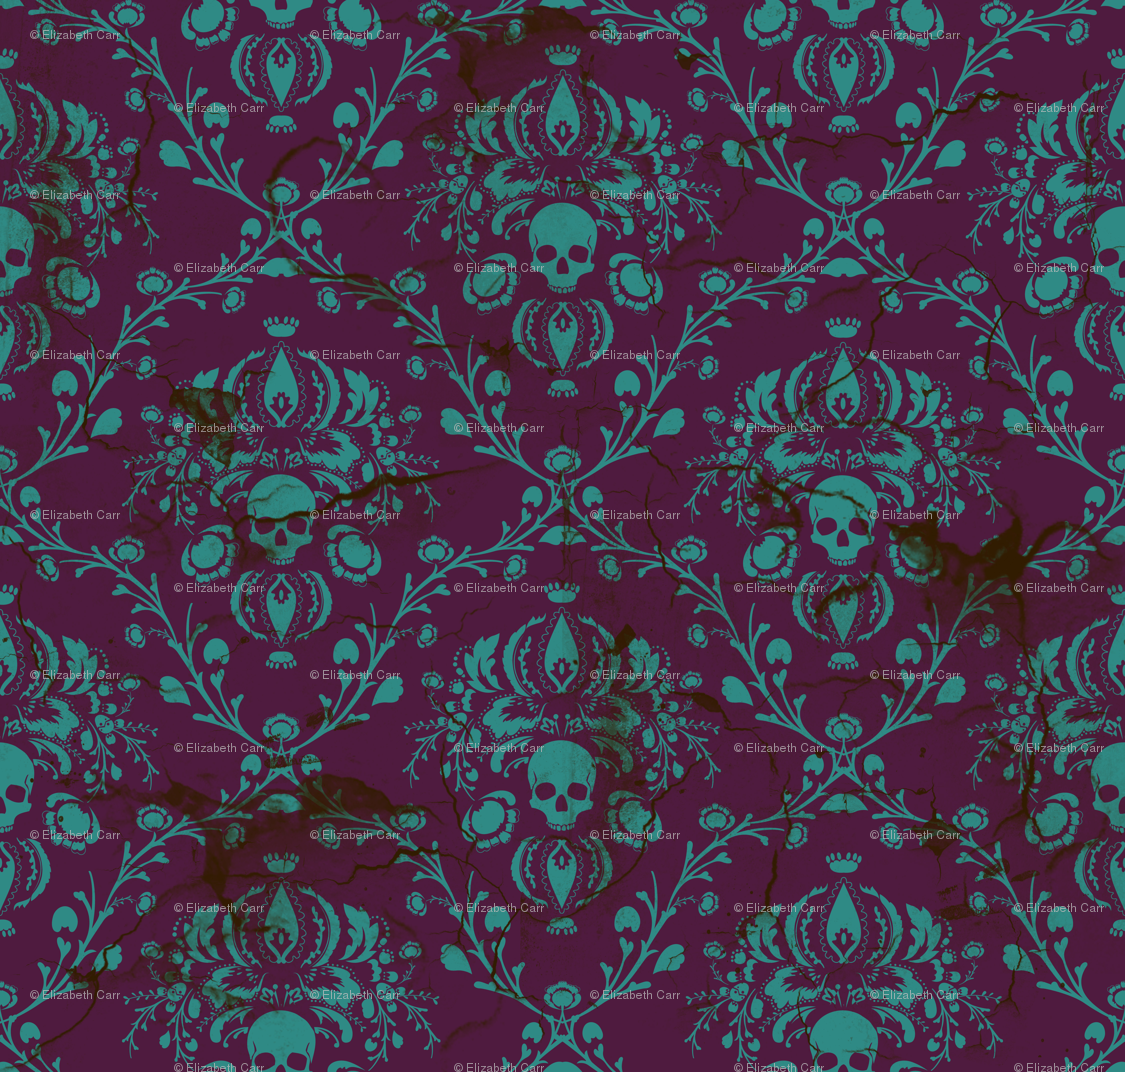 purple | rrr skull damask teal purplehighres | purple | pinterest